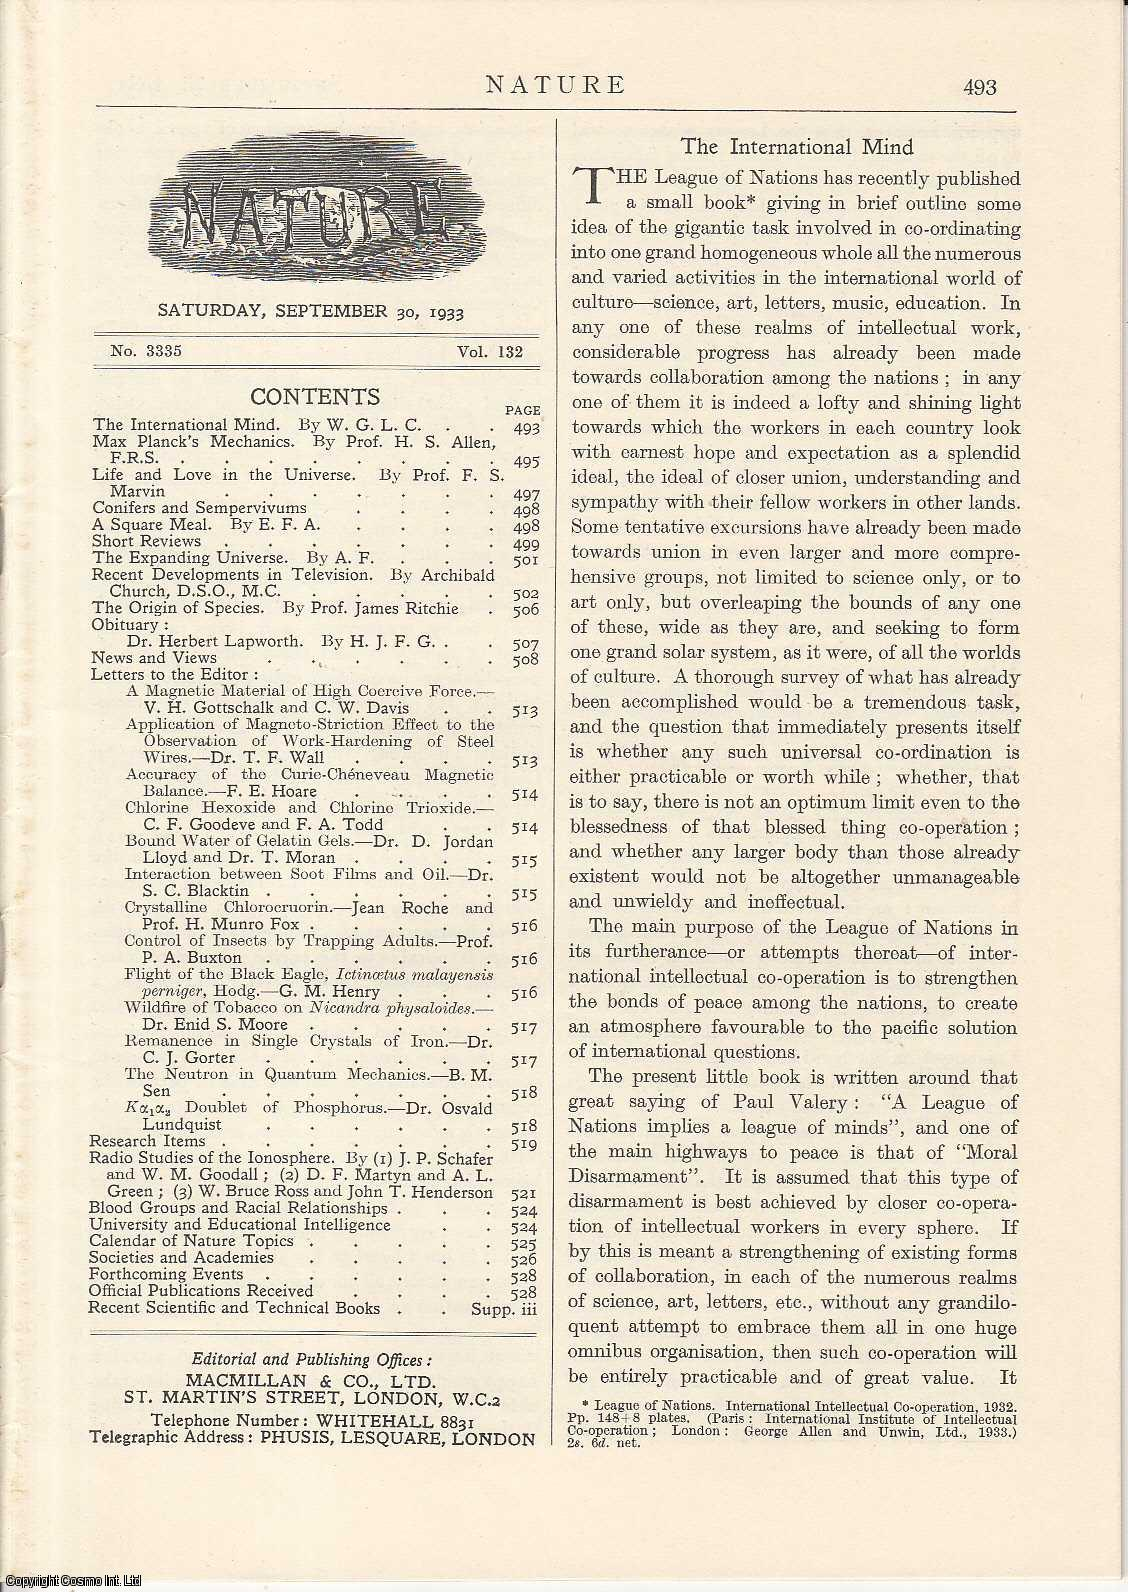 NATURE - Nature,Volume 132, Number 3335. Nature, A Weekly Journal of Science. Saturday, September 30th, 1933.